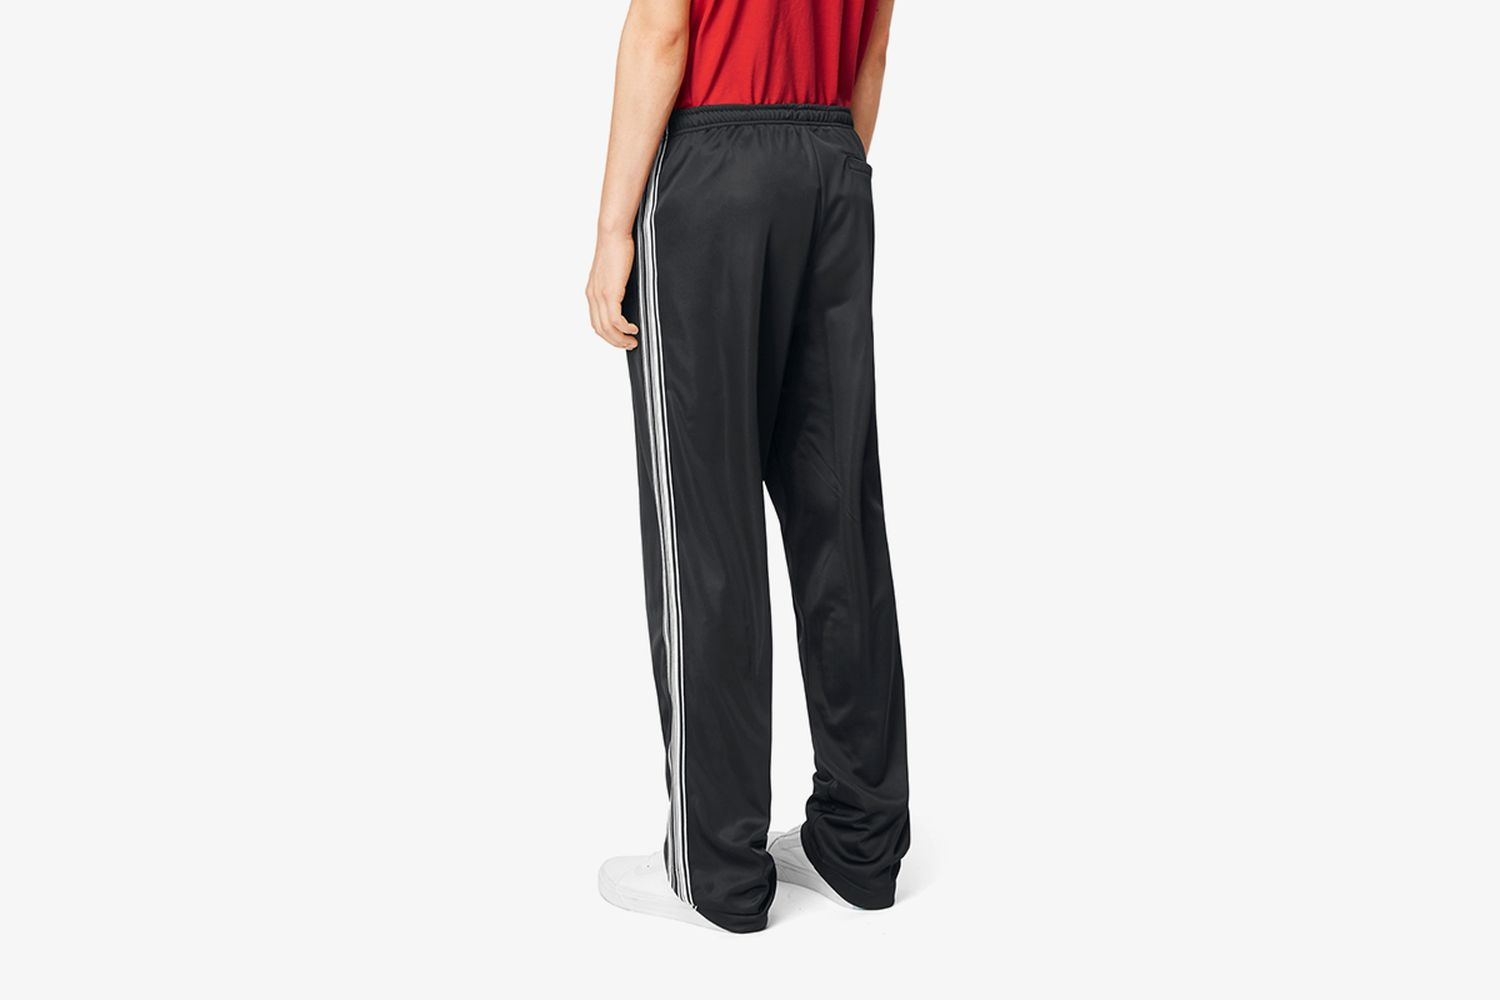 Irvin Trousers